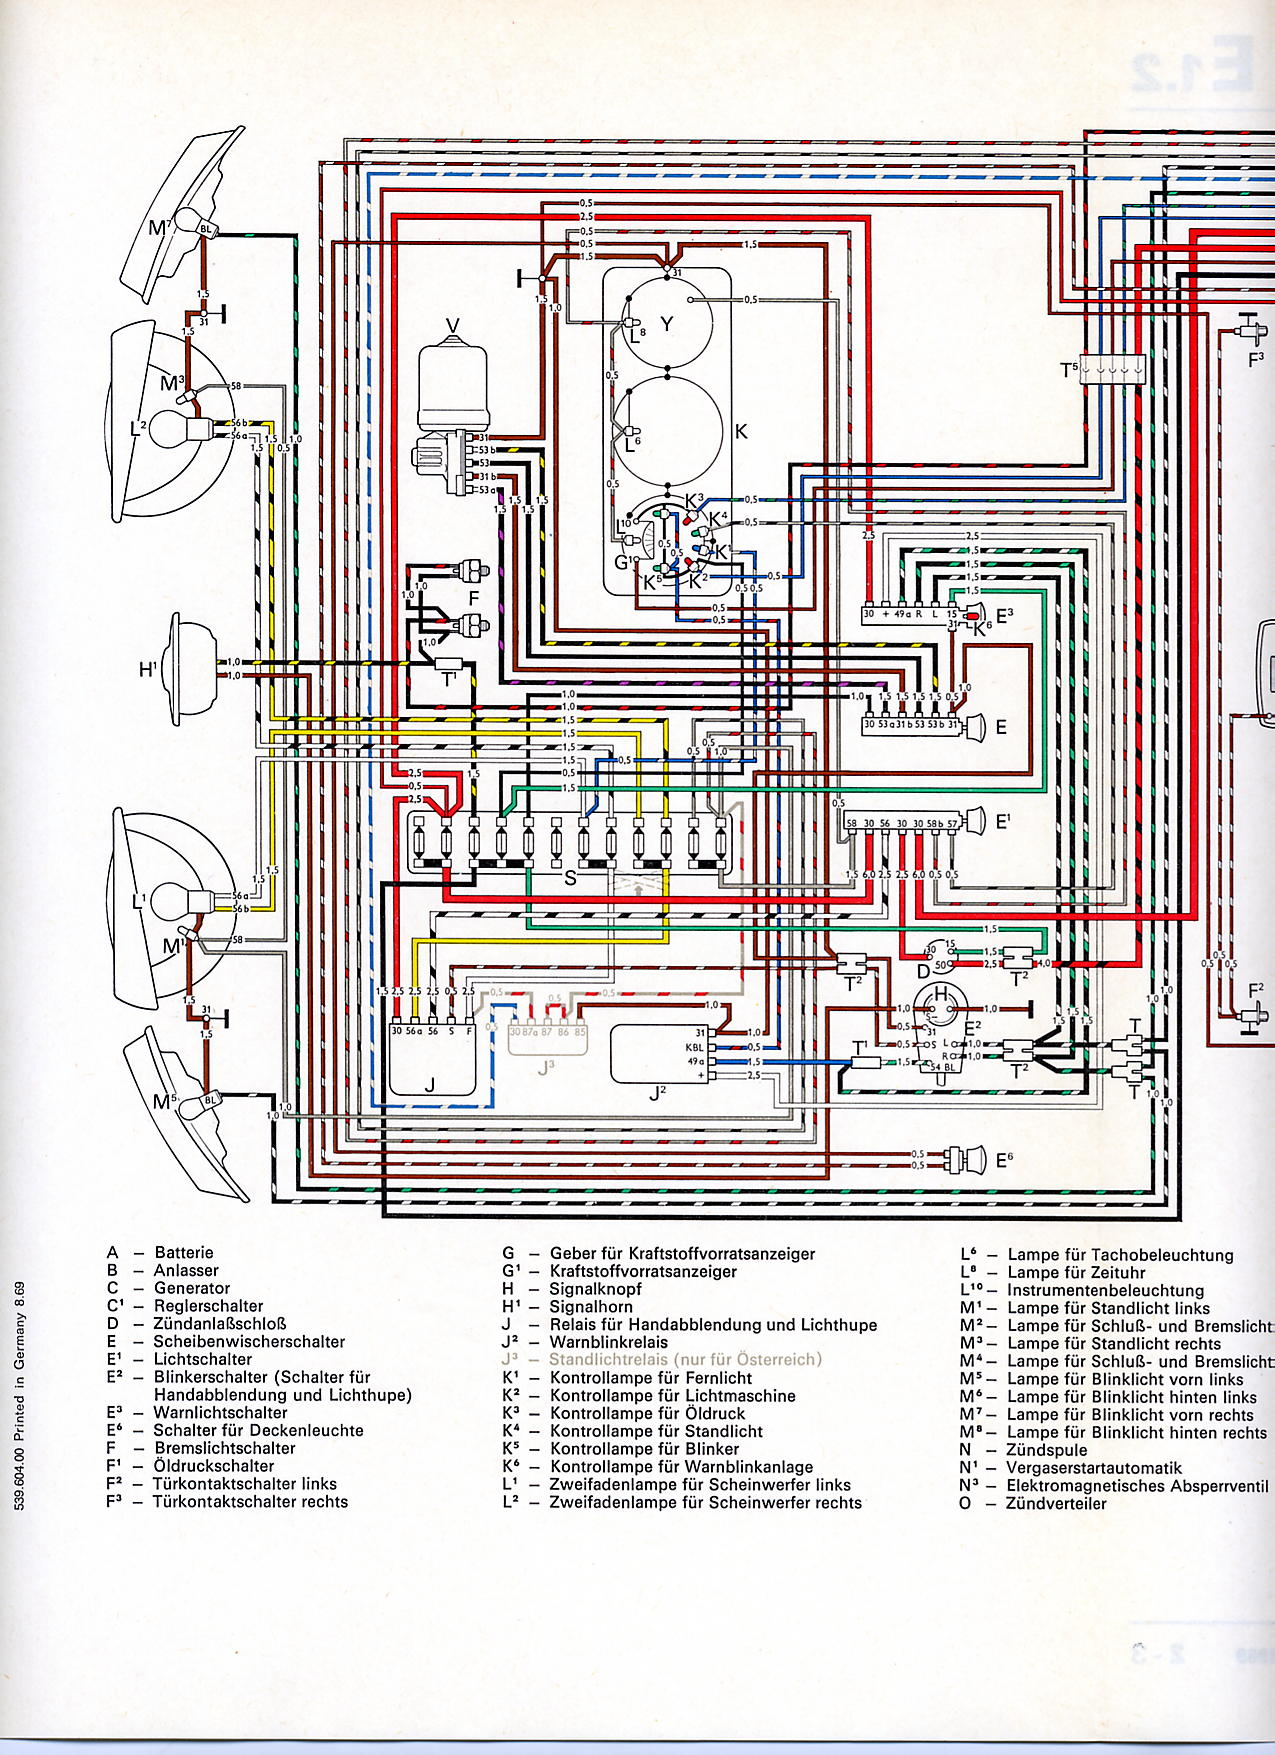 Vw Bus And Other Wiring Diagrams 2 Line Phone Systems Diagram De Y 1